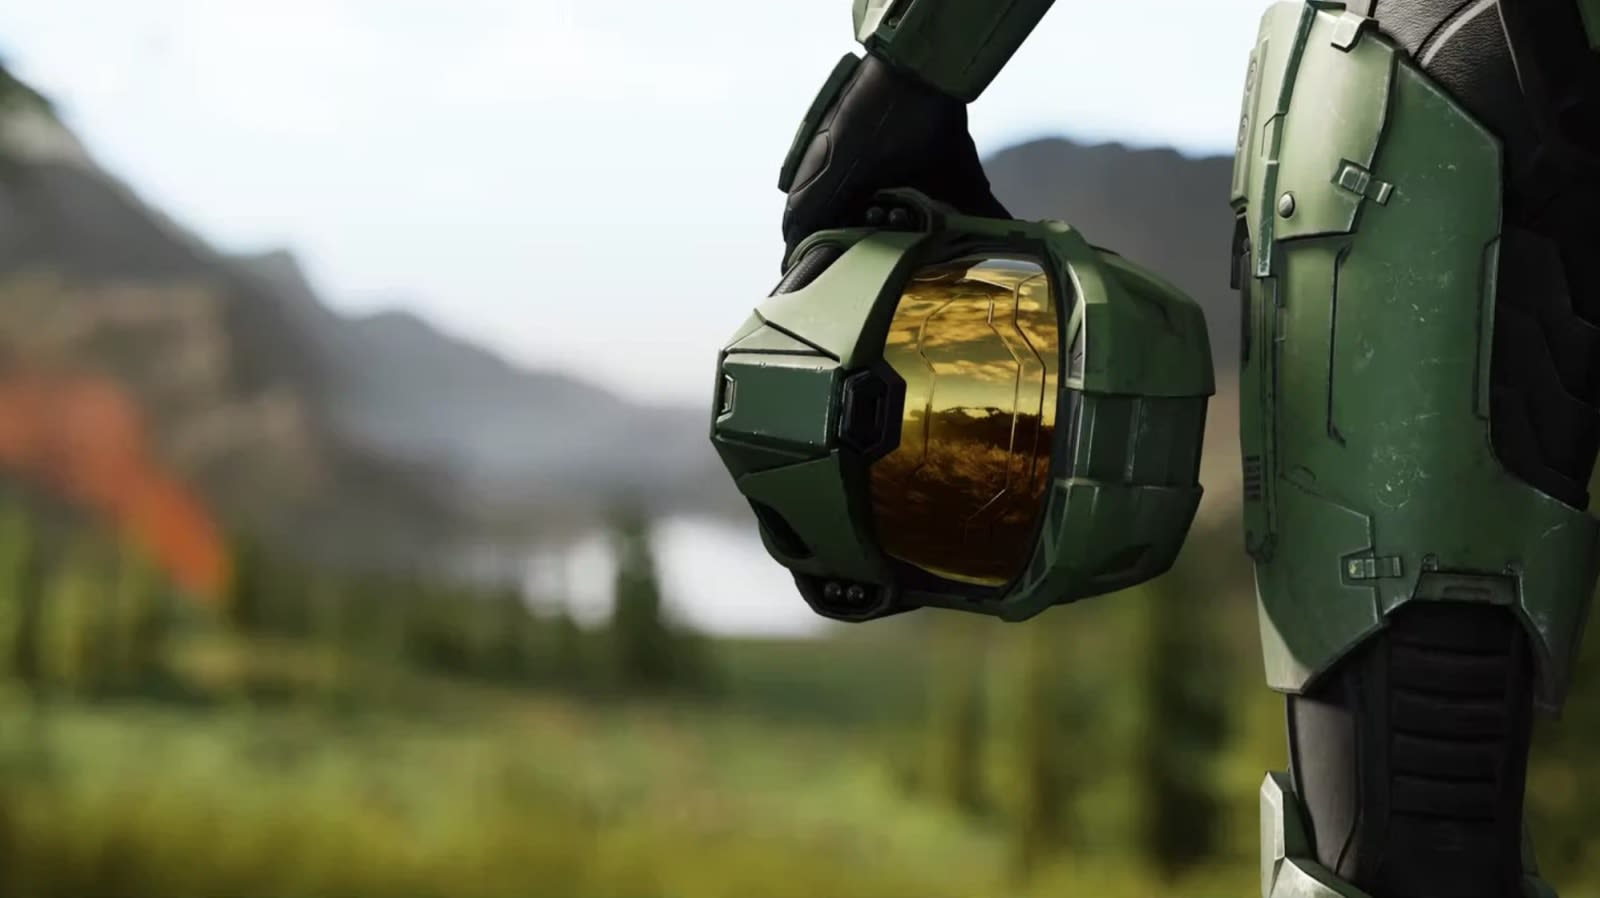 'Halo Infinite' arrives holiday 2020 alongside the new Xbox